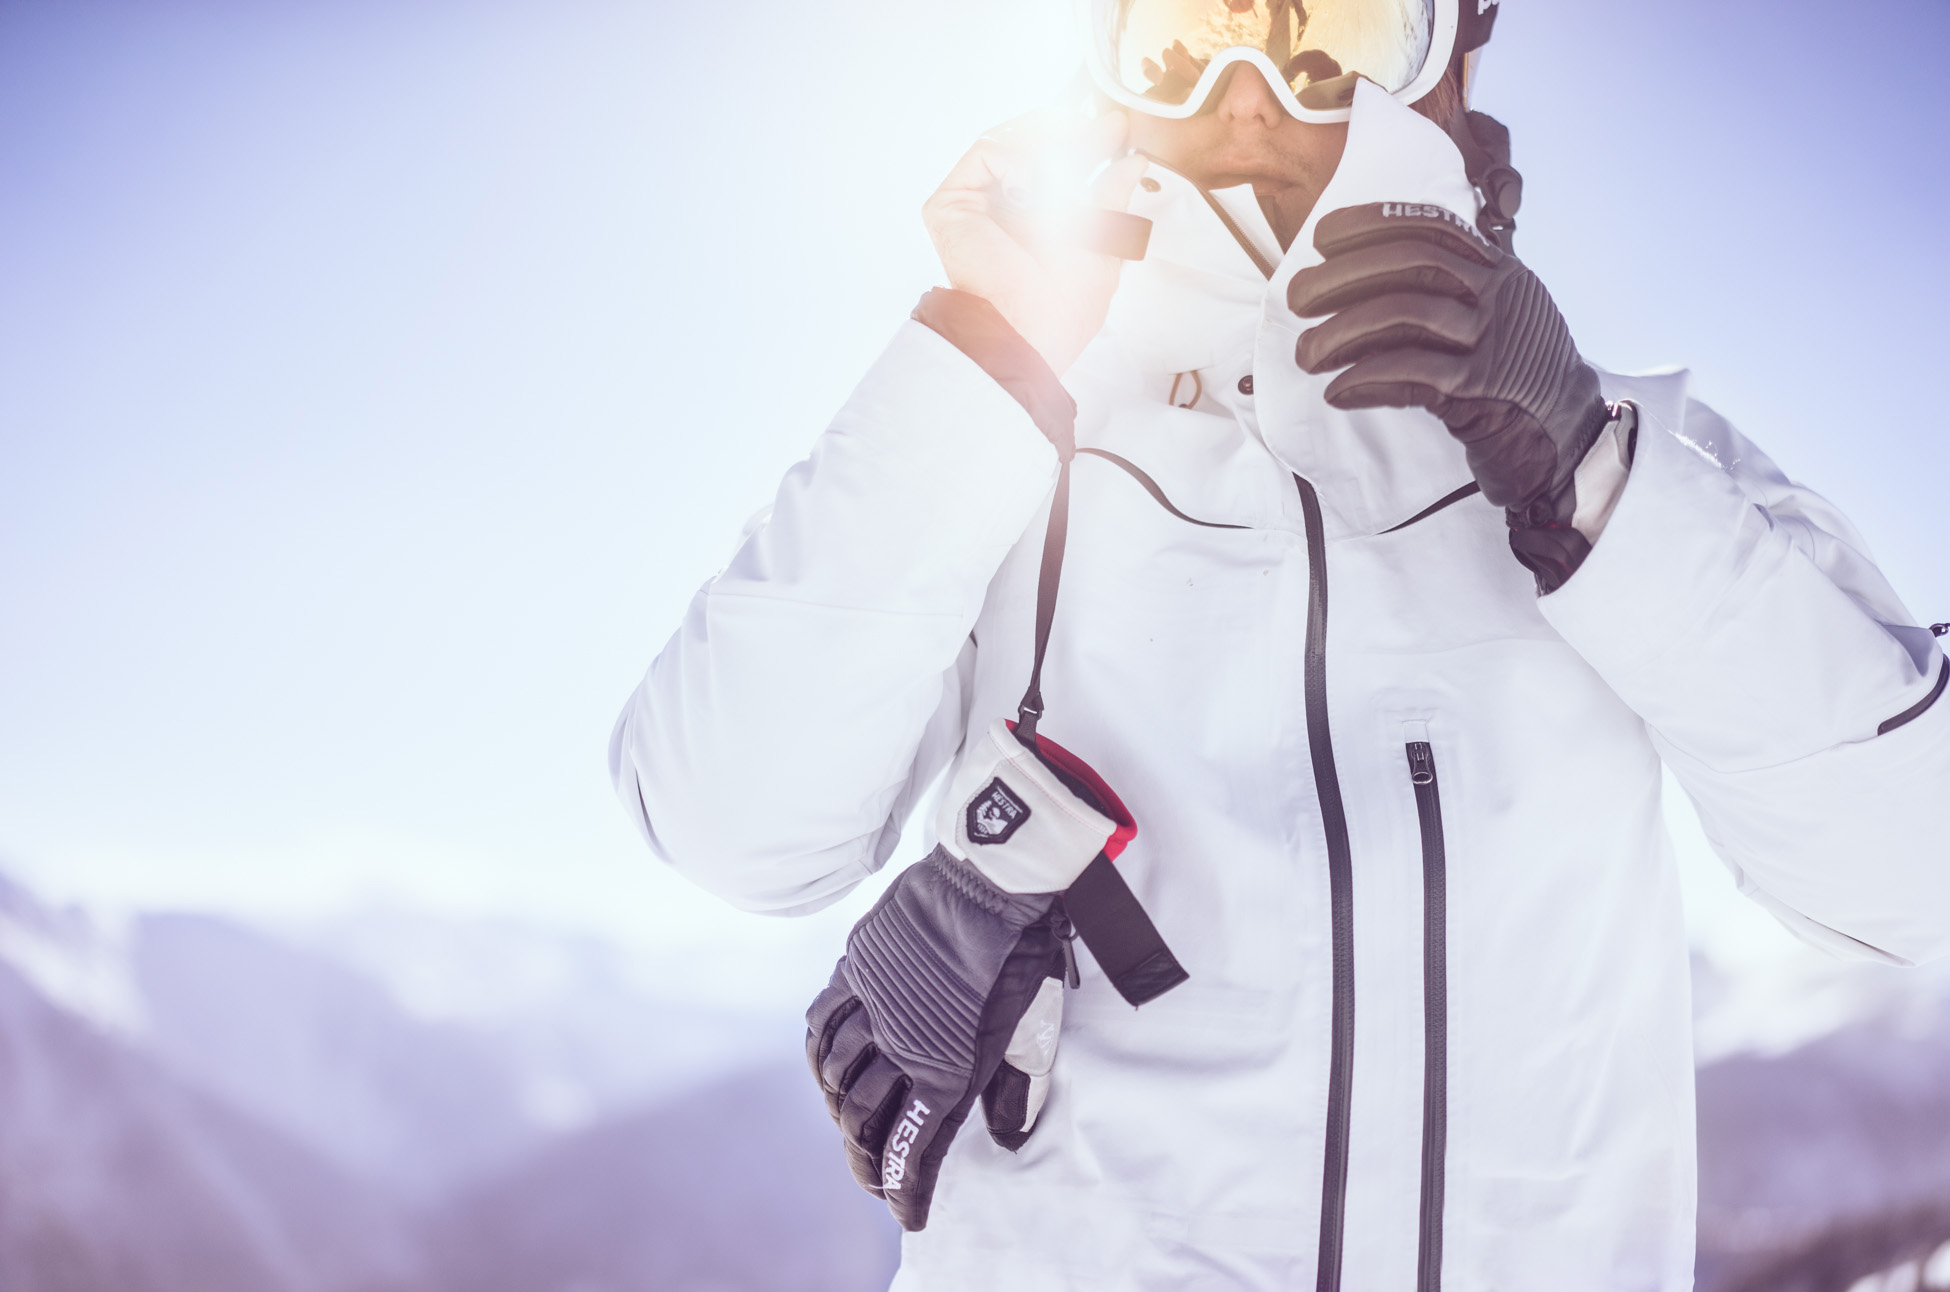 Jon Olsson - Hestra Ski Gloves